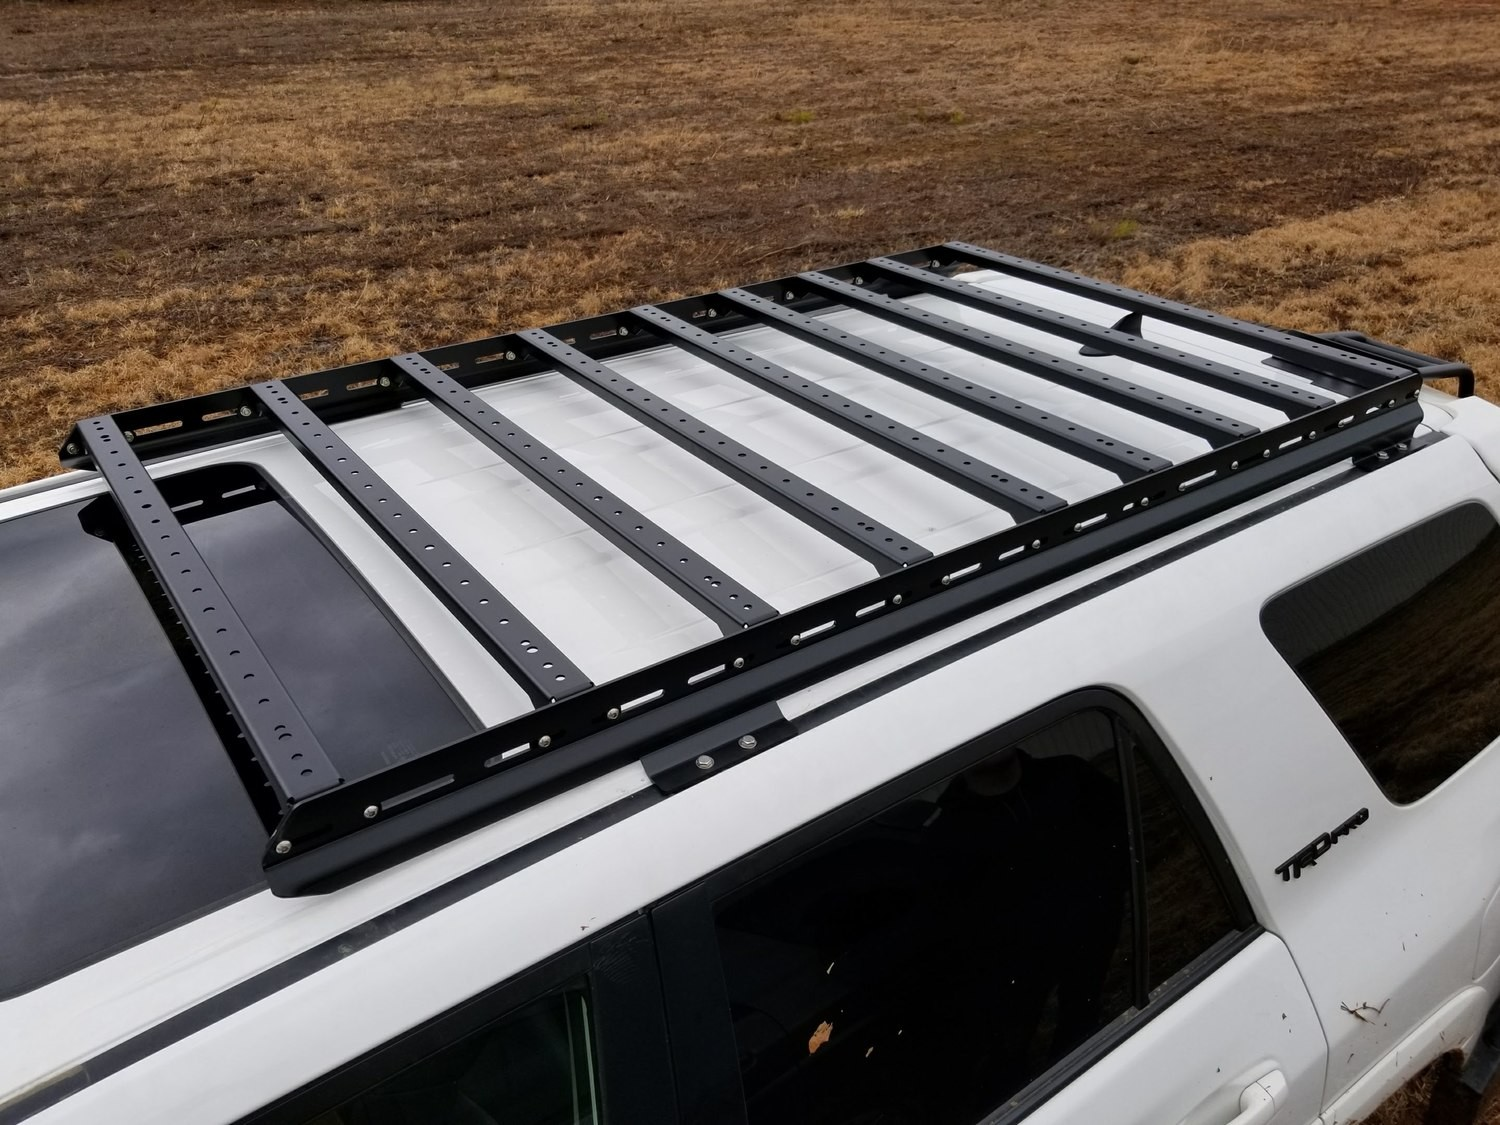 LFD Offroad - Roof Rack - 7/8 5th Gen 4Runner (2010+)